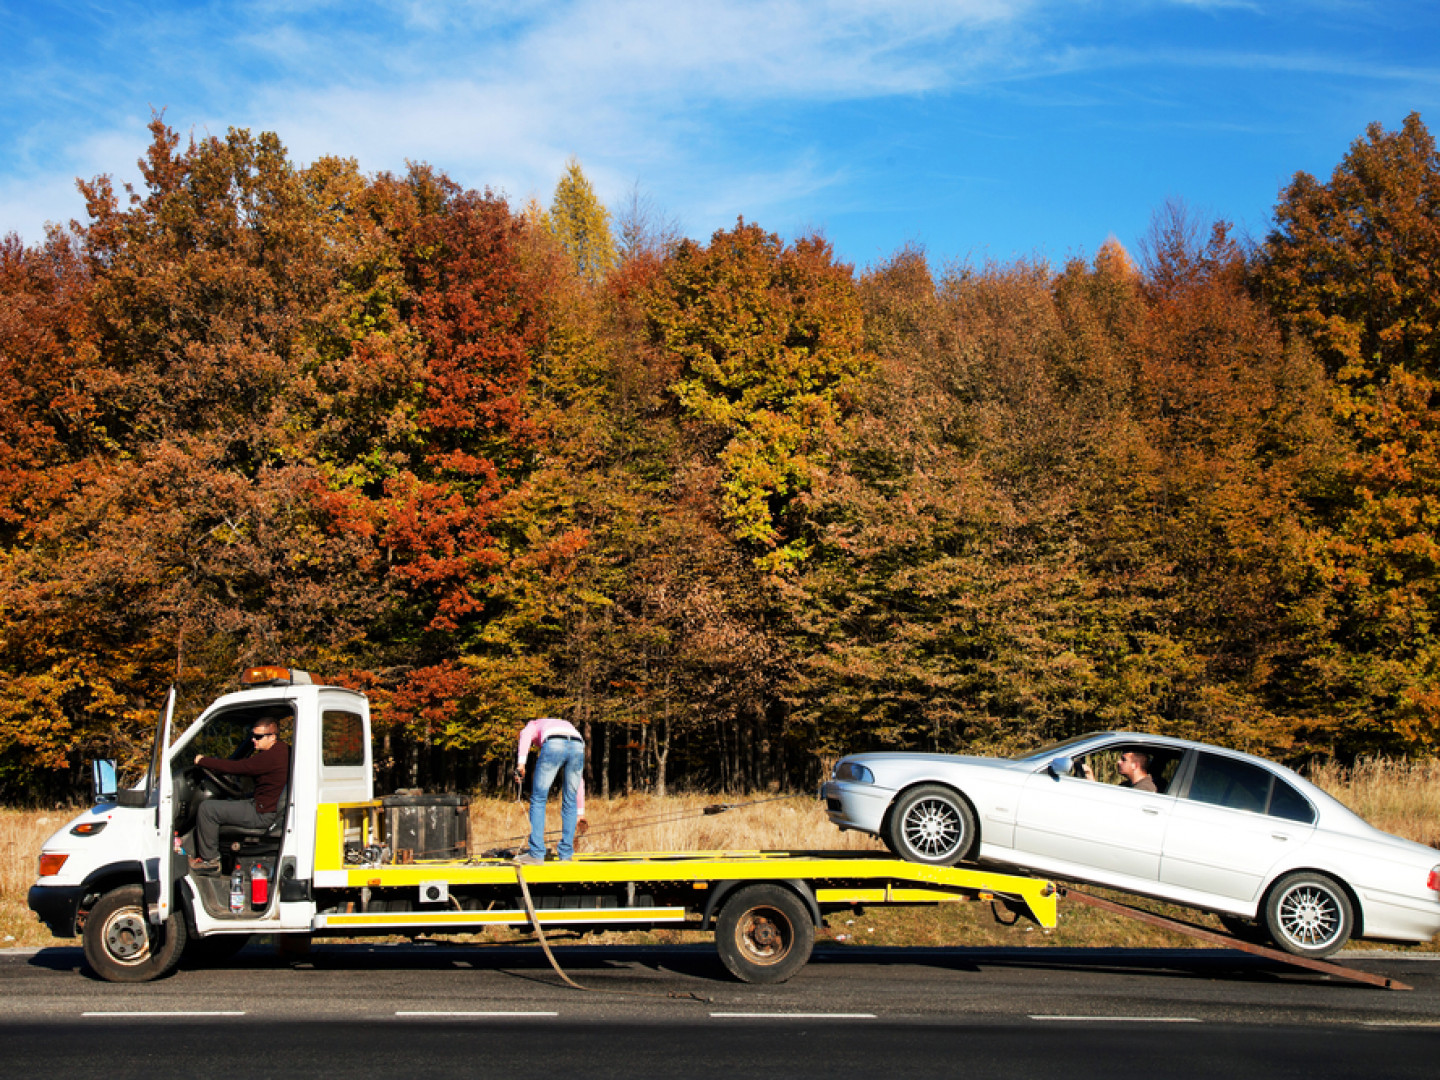 Leave Heavy Equipment Towing to the Pros